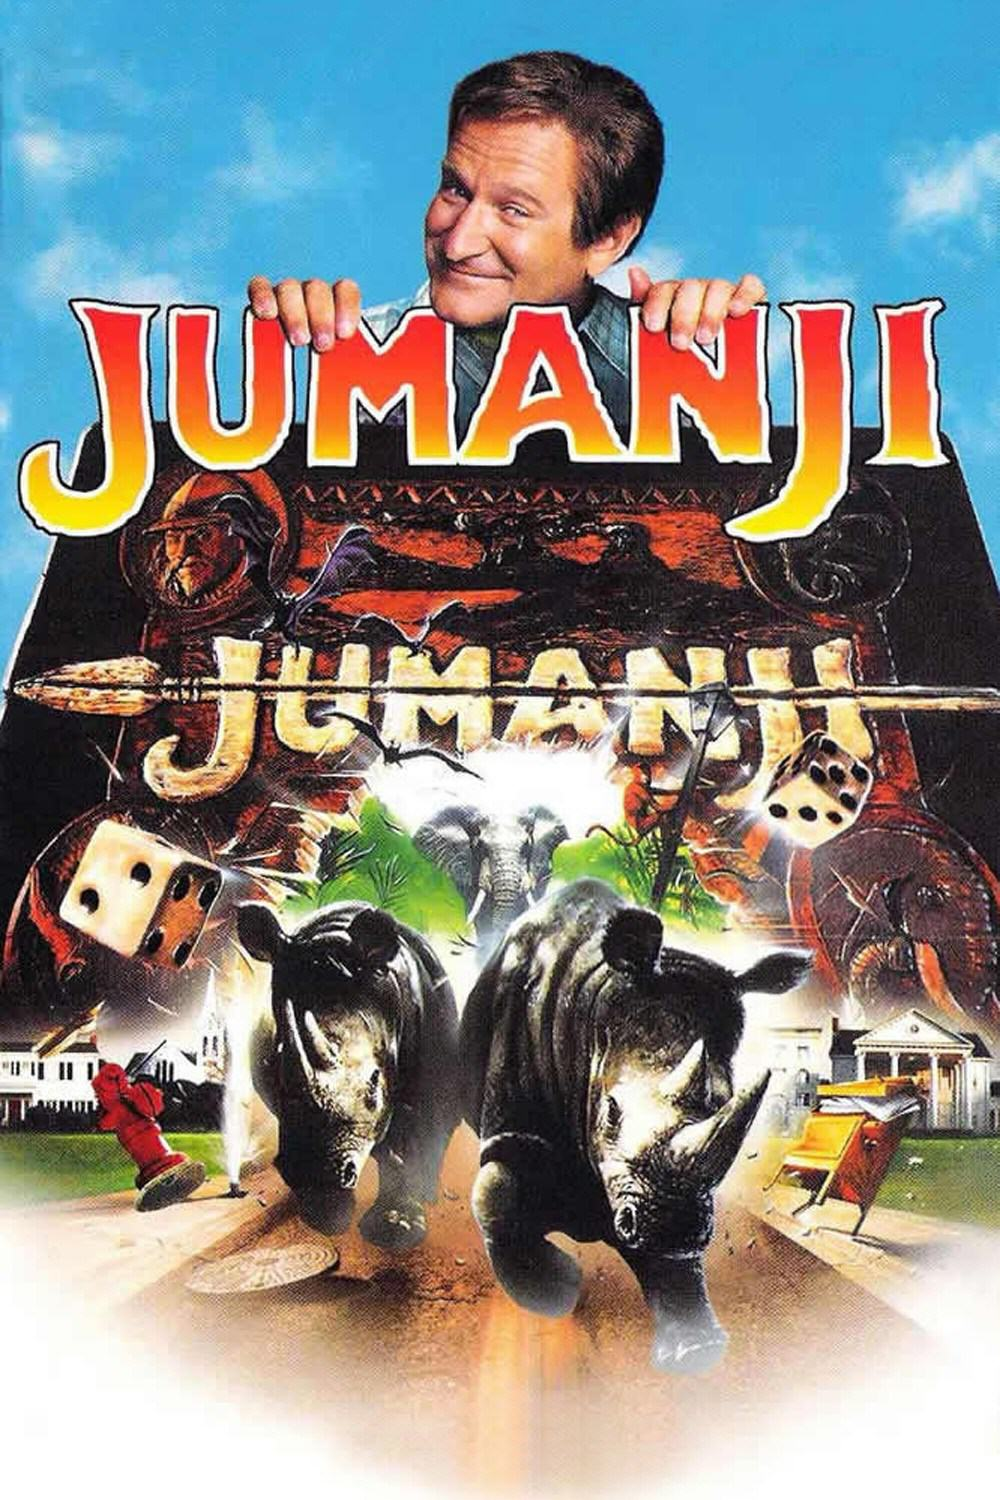 UNILADs There Is Going To Be An Official Remake Of Jumanji image